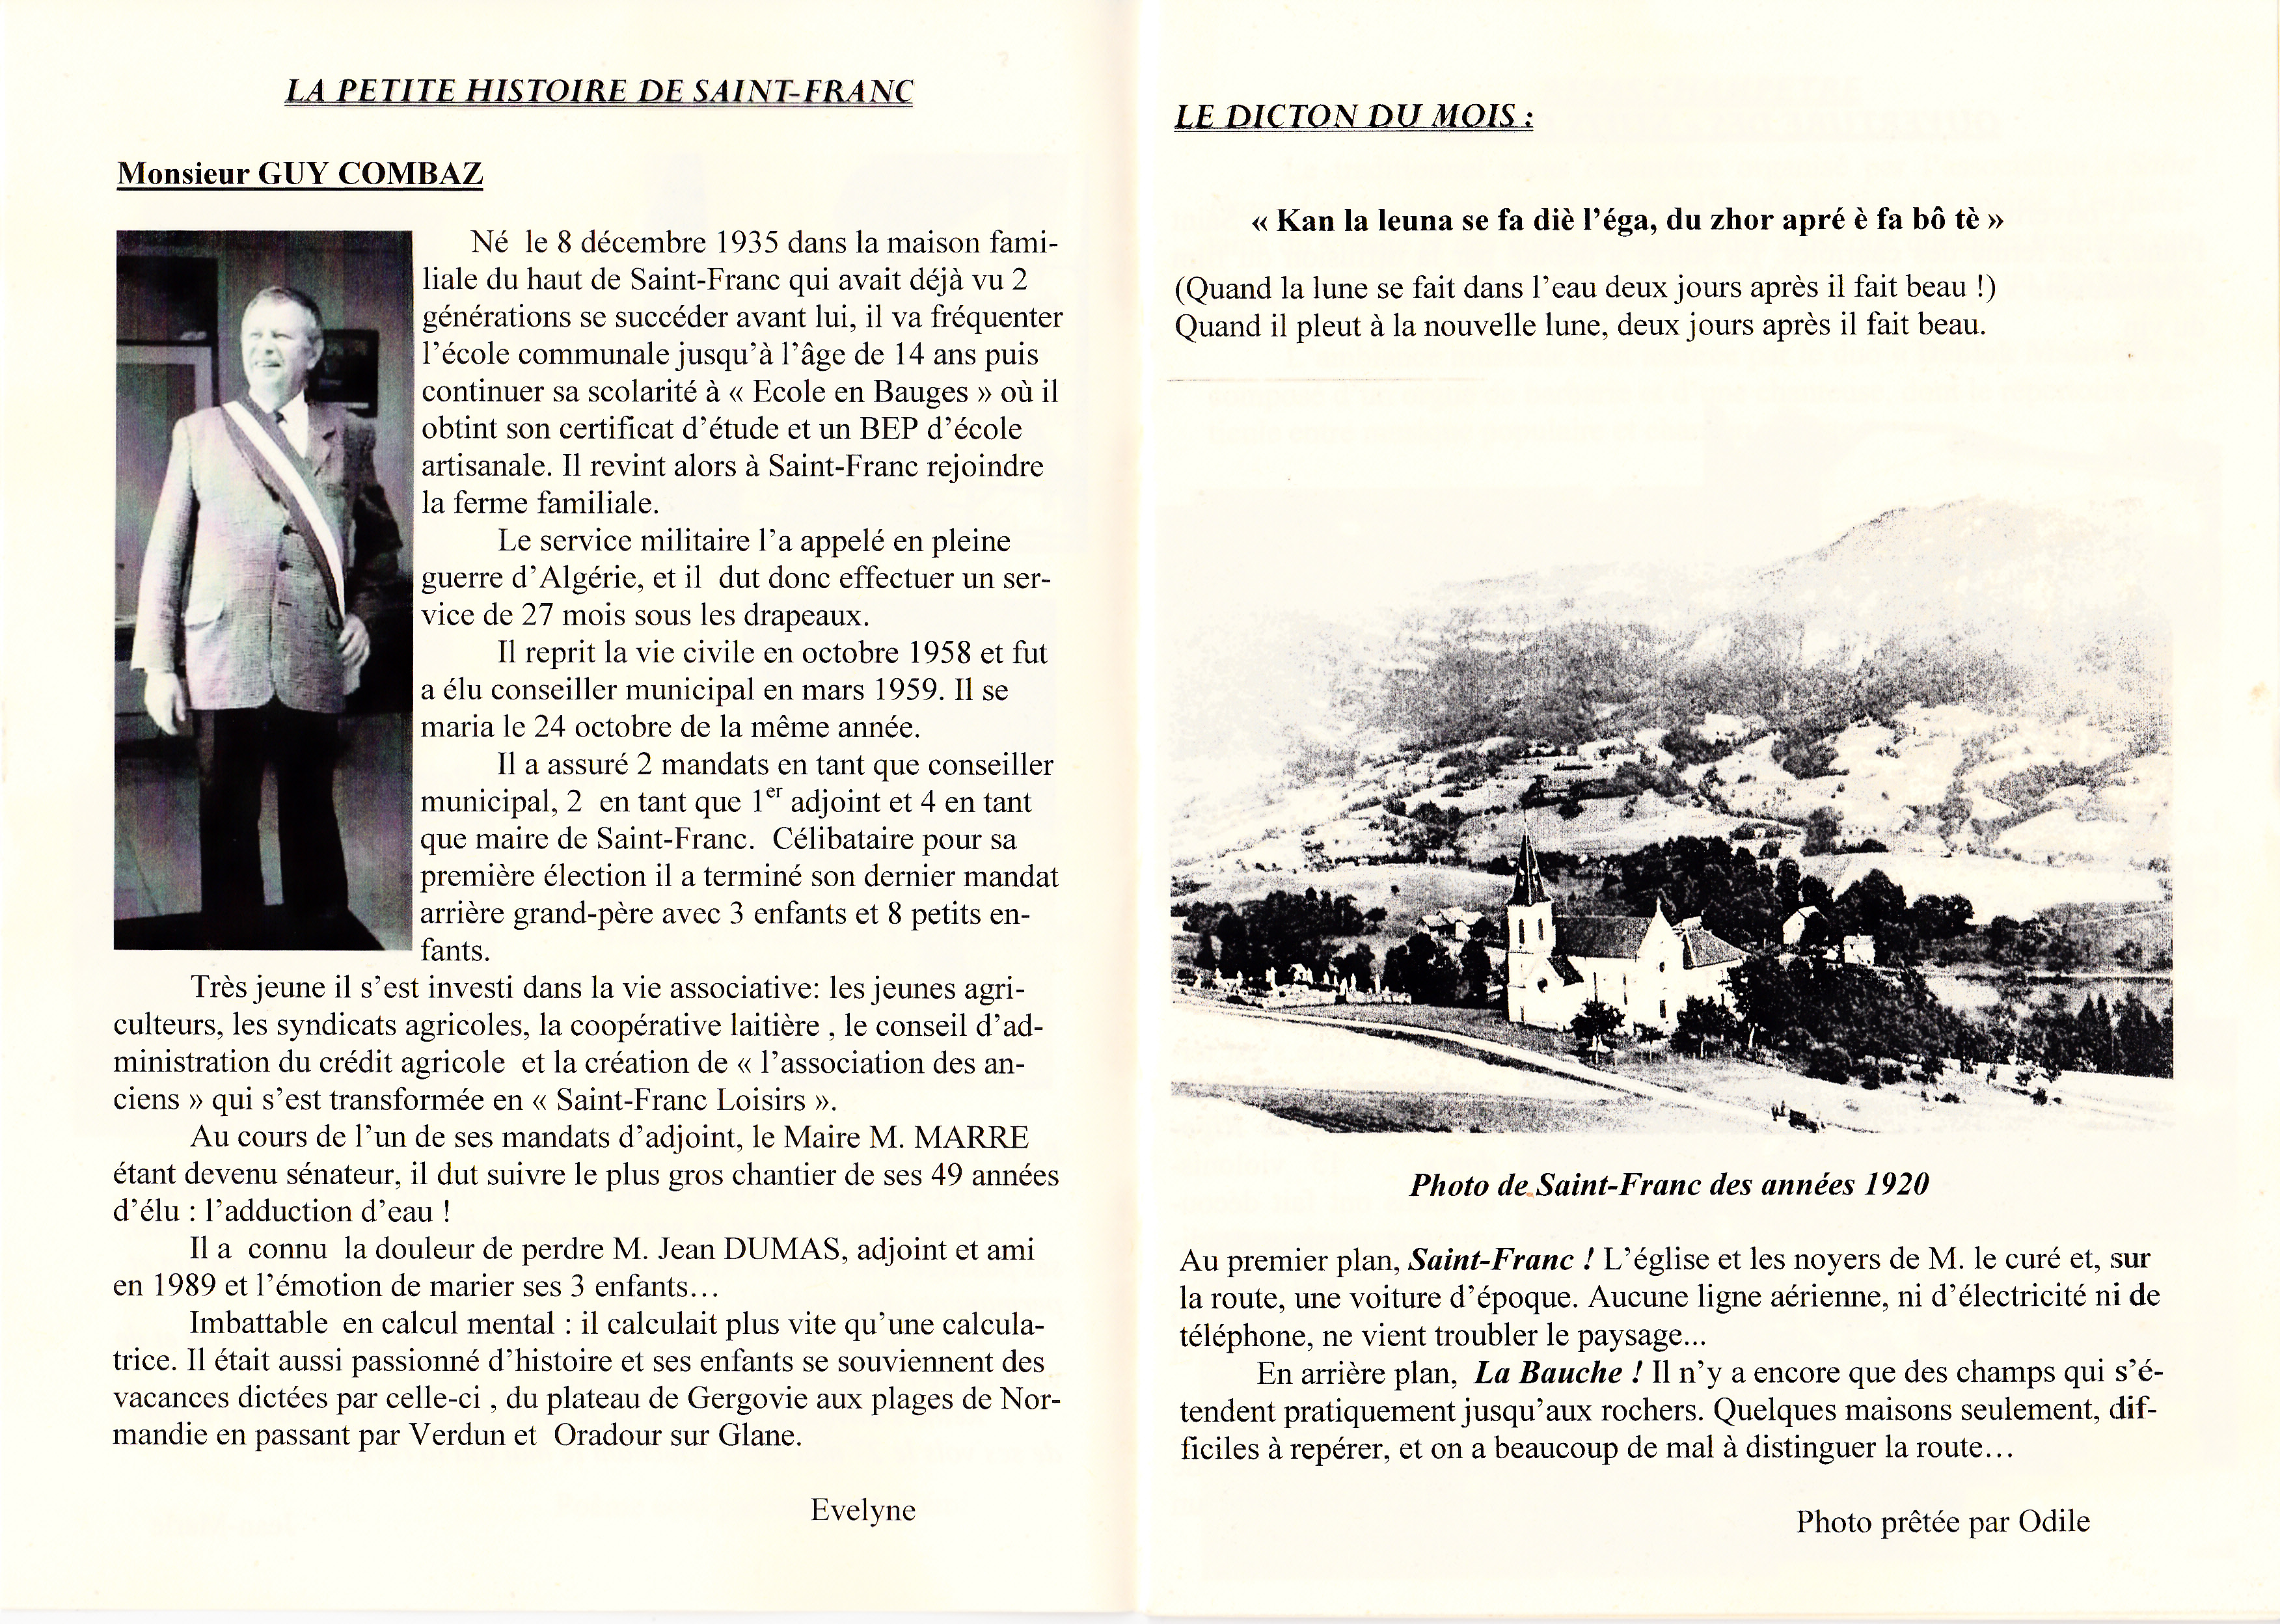 LPS n° 4 Pages 4 & 5